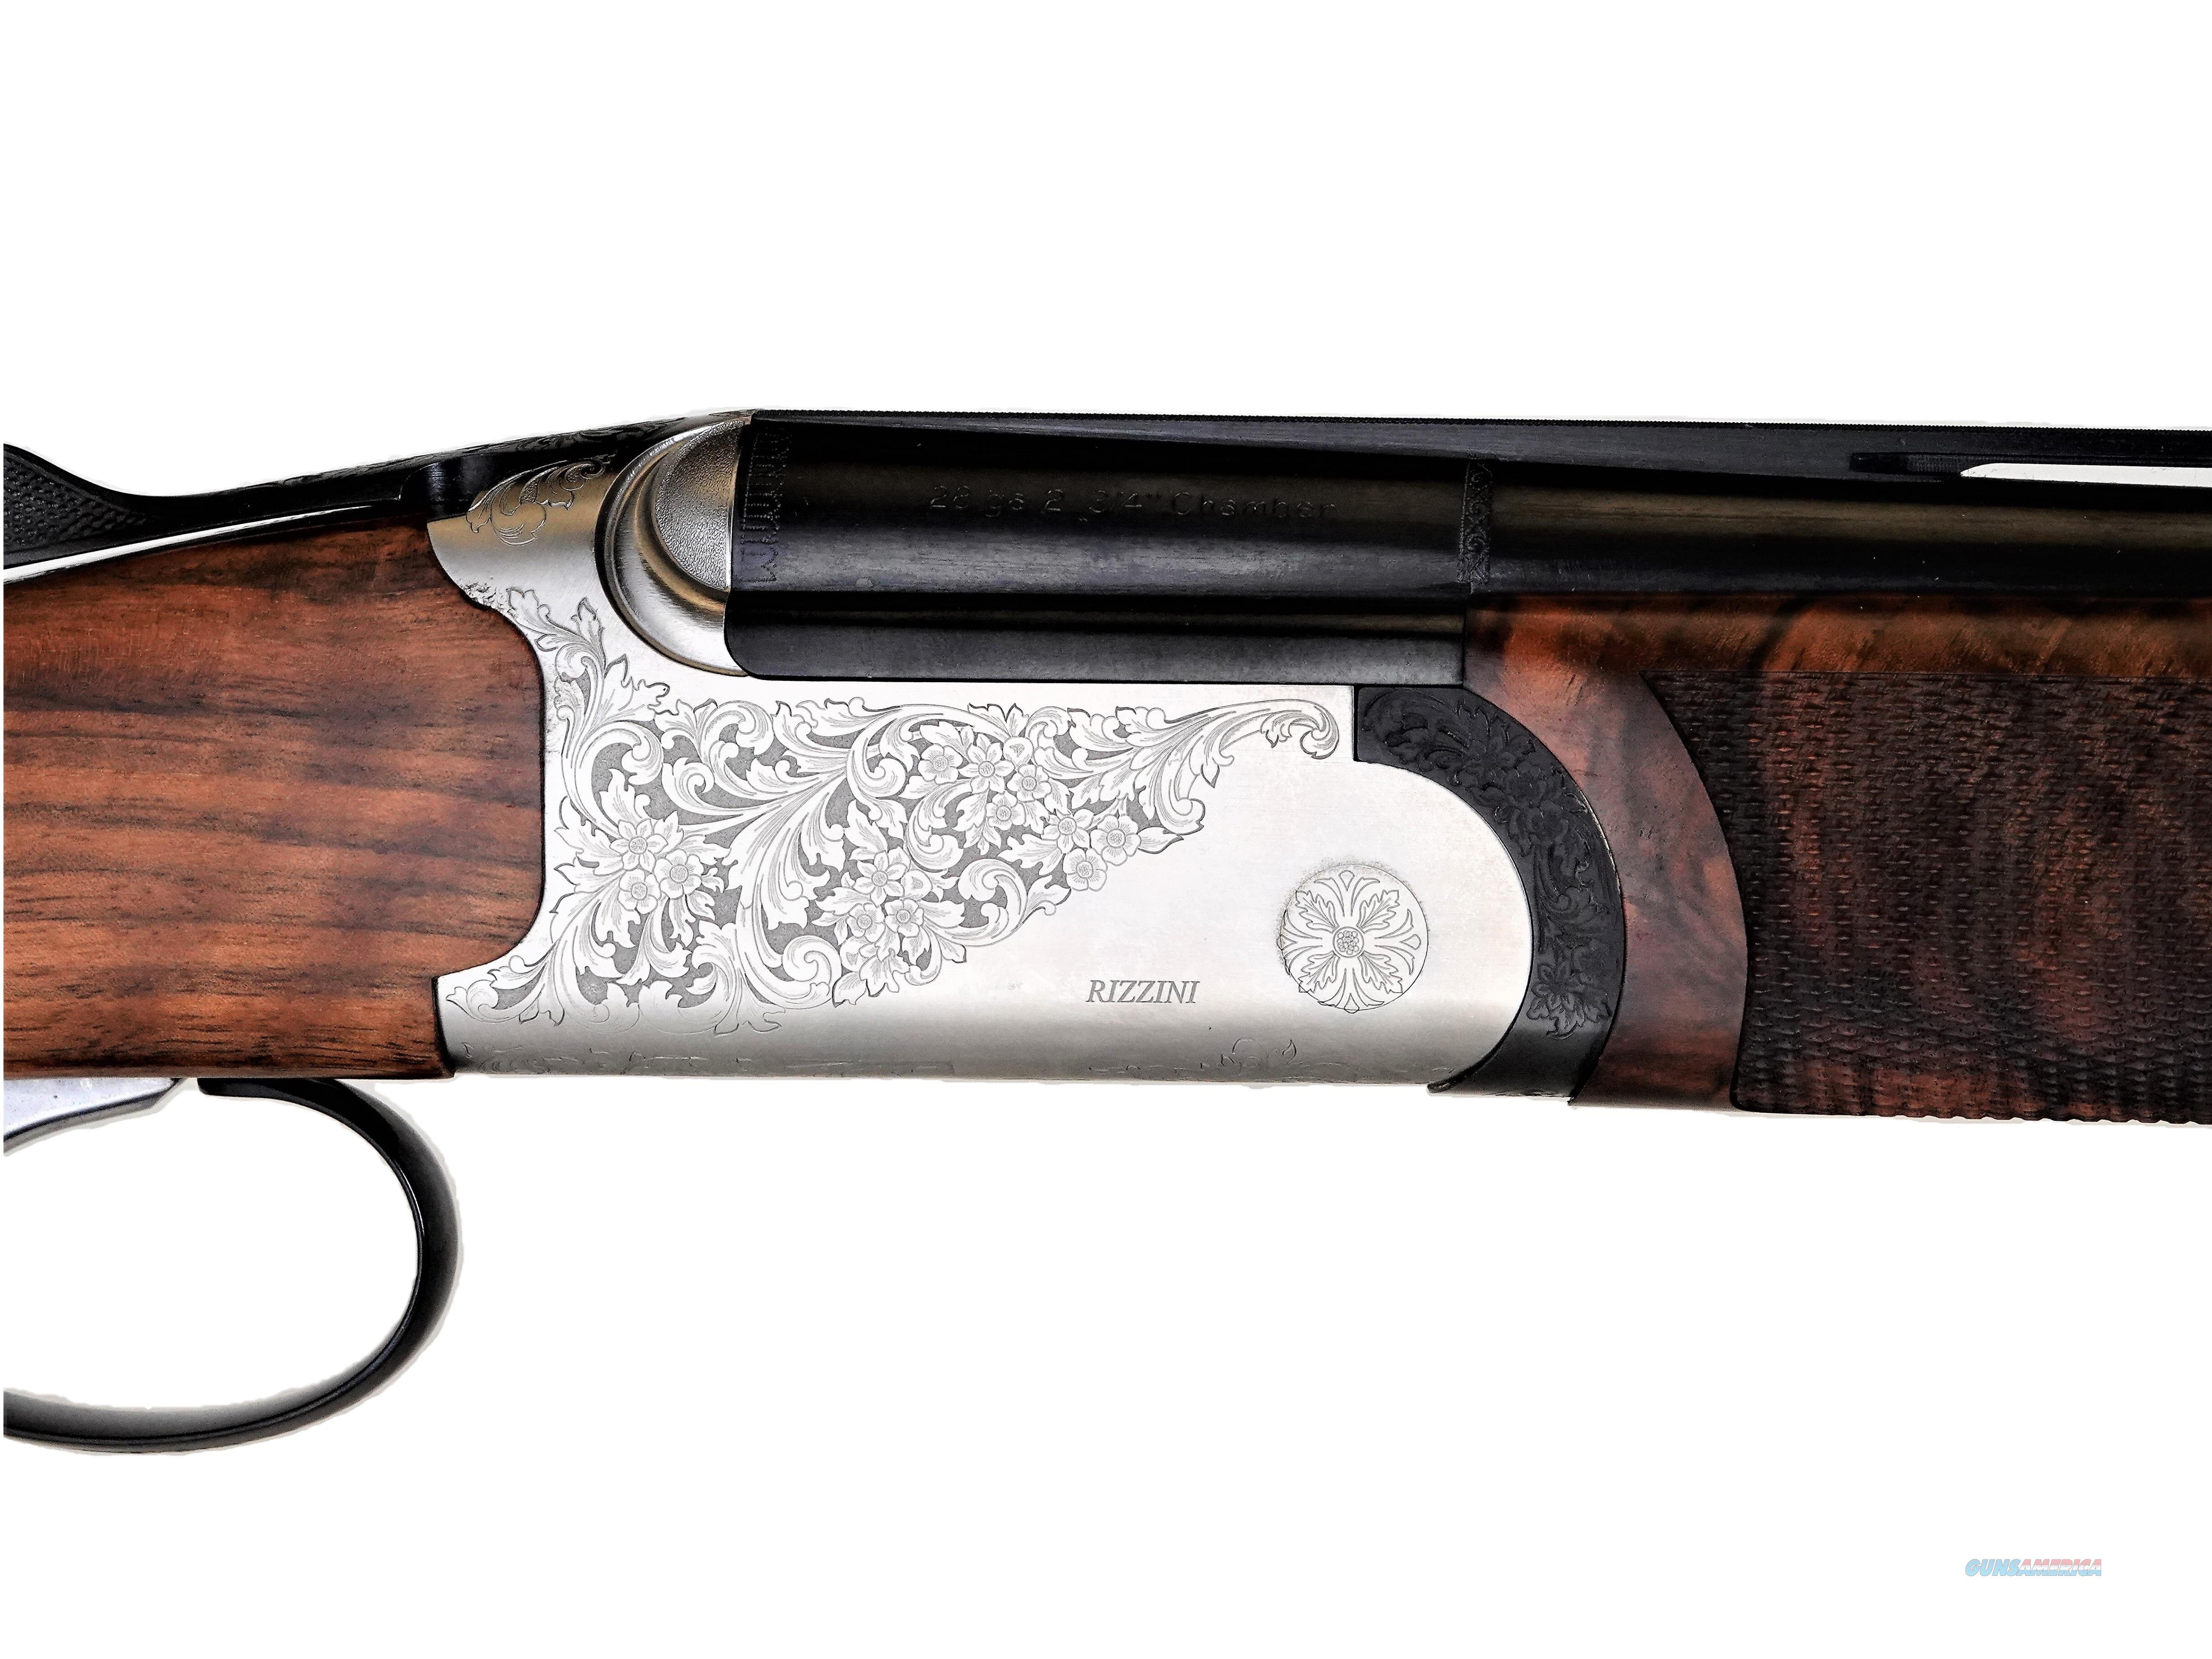 "B. Rizzini - Round Body EM Small Action 28ga, 29"" barrels  Guns > Shotguns > Rizzini Shotguns"